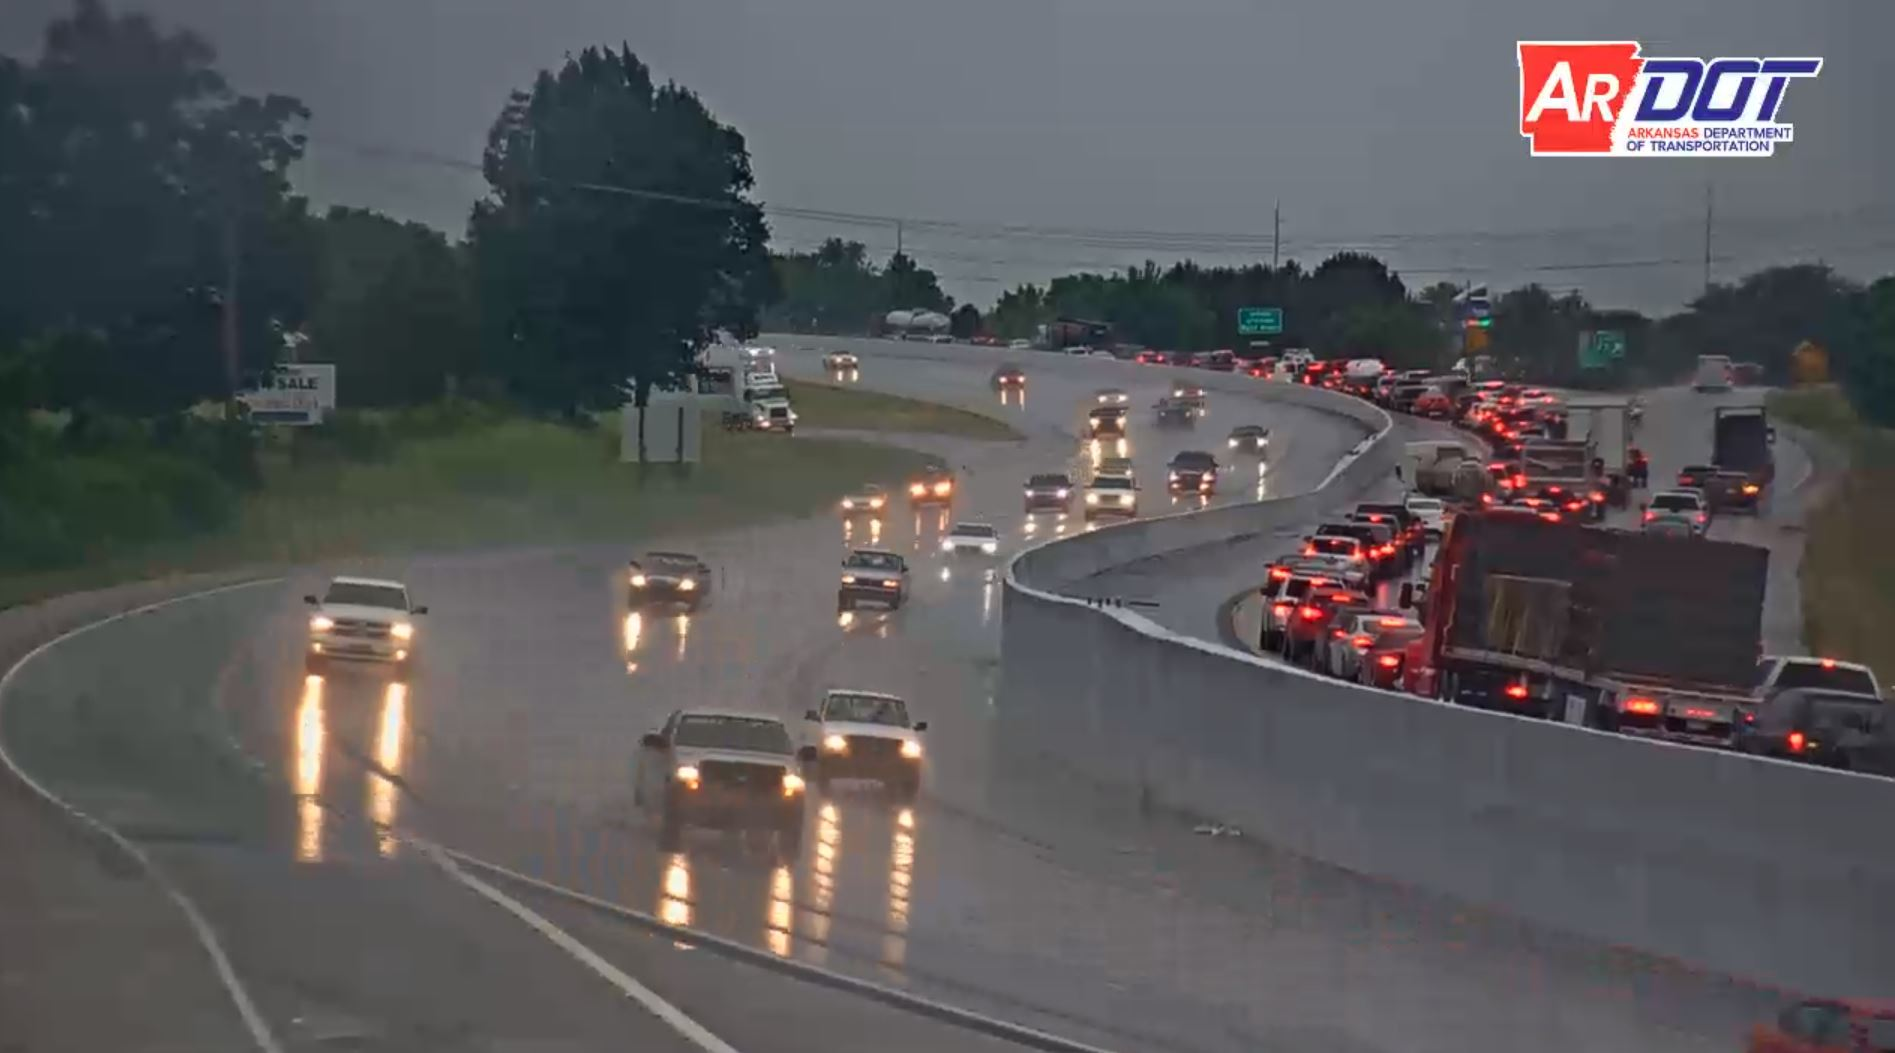 Image courtesy of iDriveArkansas.com and the Arkansas Department of Transportation.